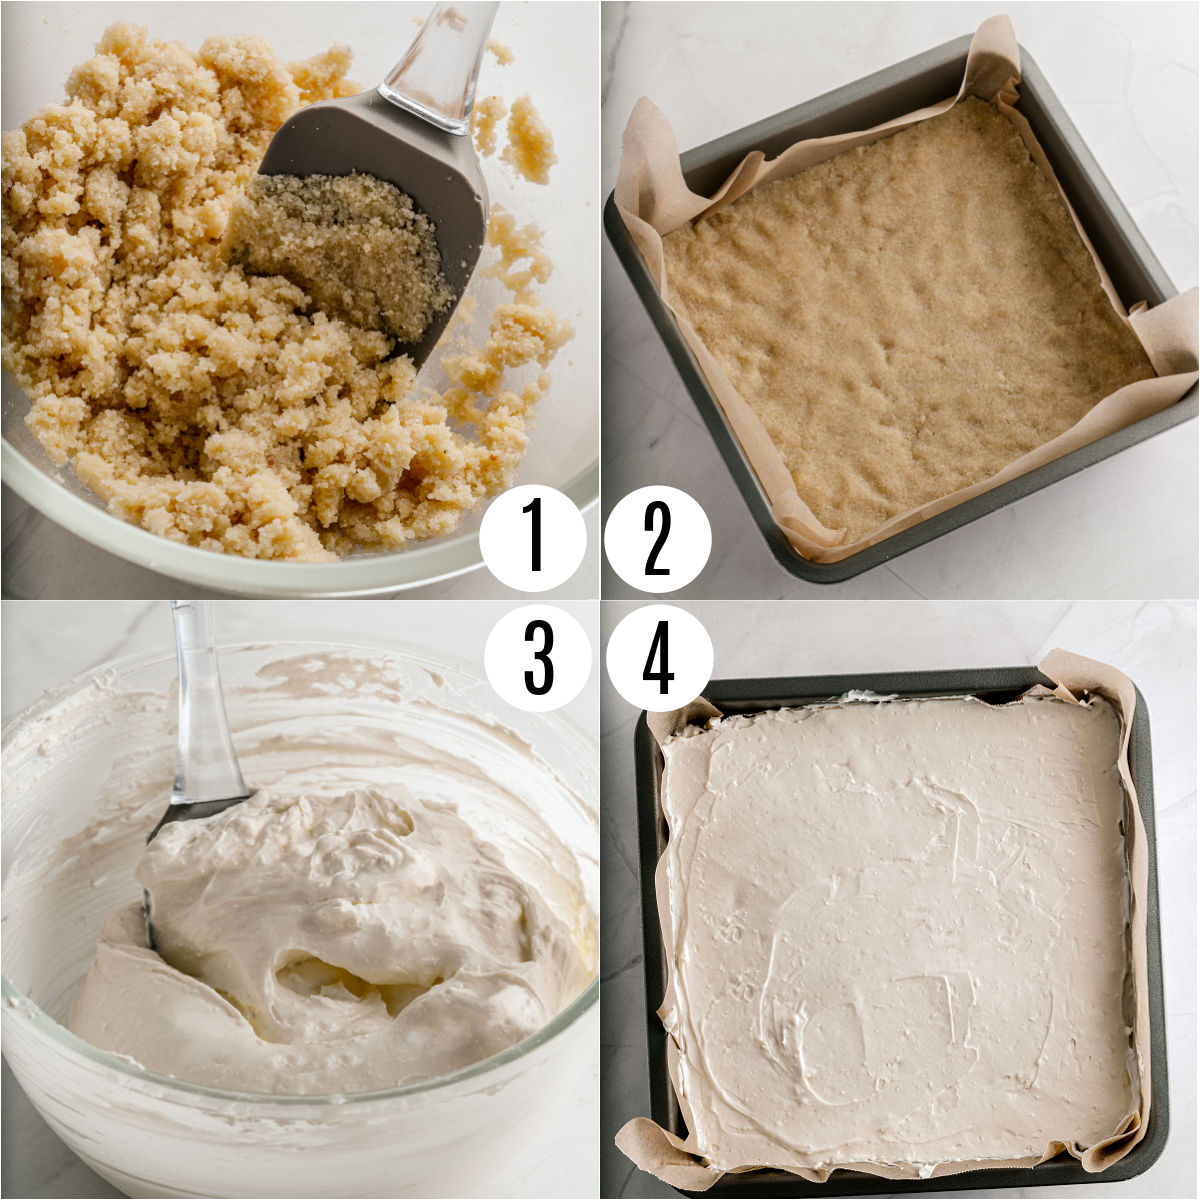 Step by step photos showing how to make gluten free cheesecake bars.